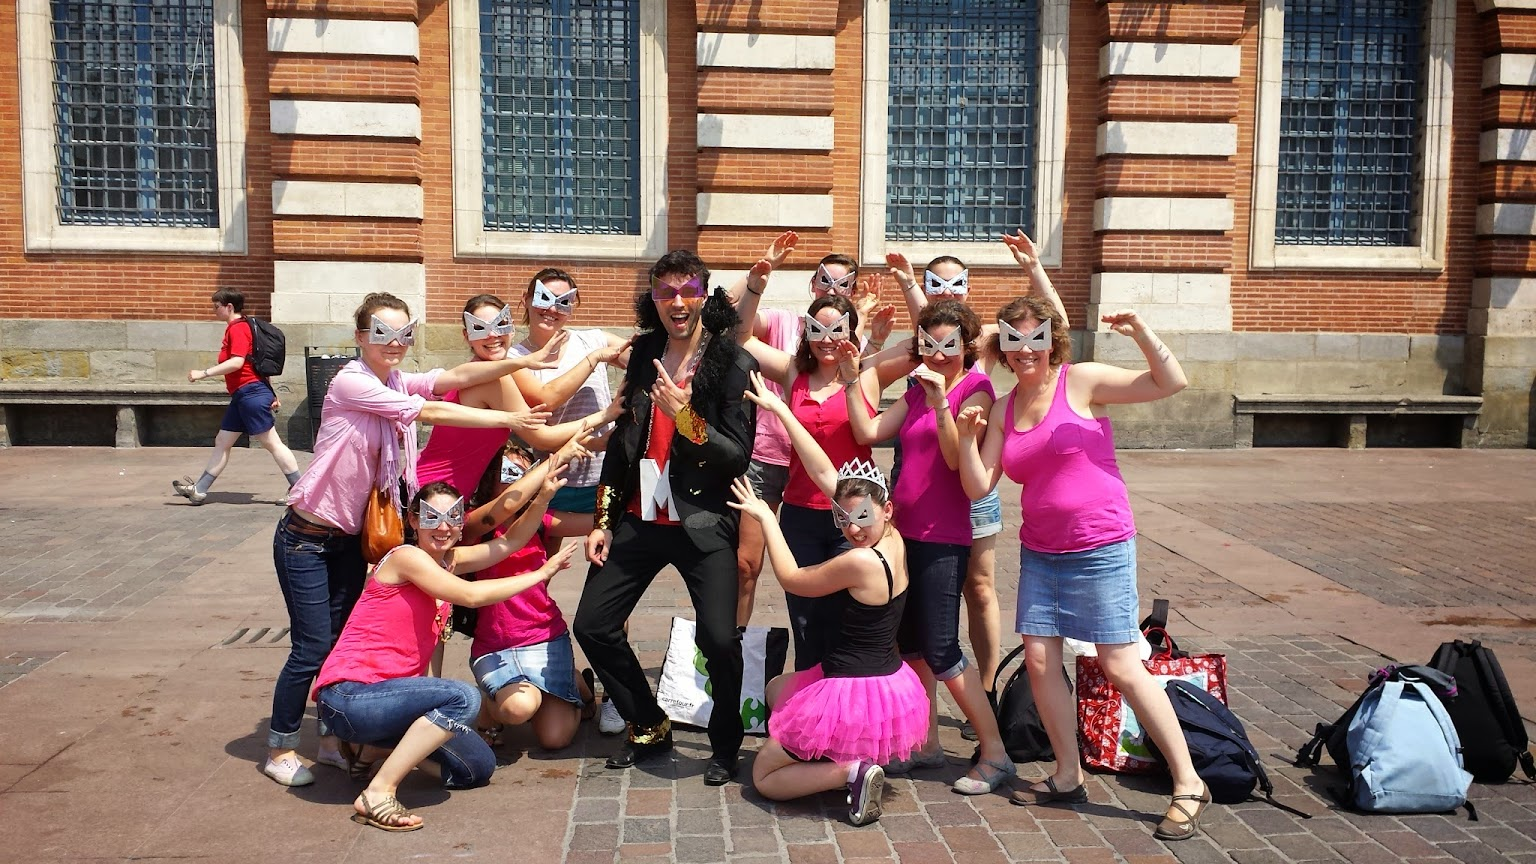 Mojo Toulouse Meremptah 2013 Flash Mob Capitole Matthieu Chedid